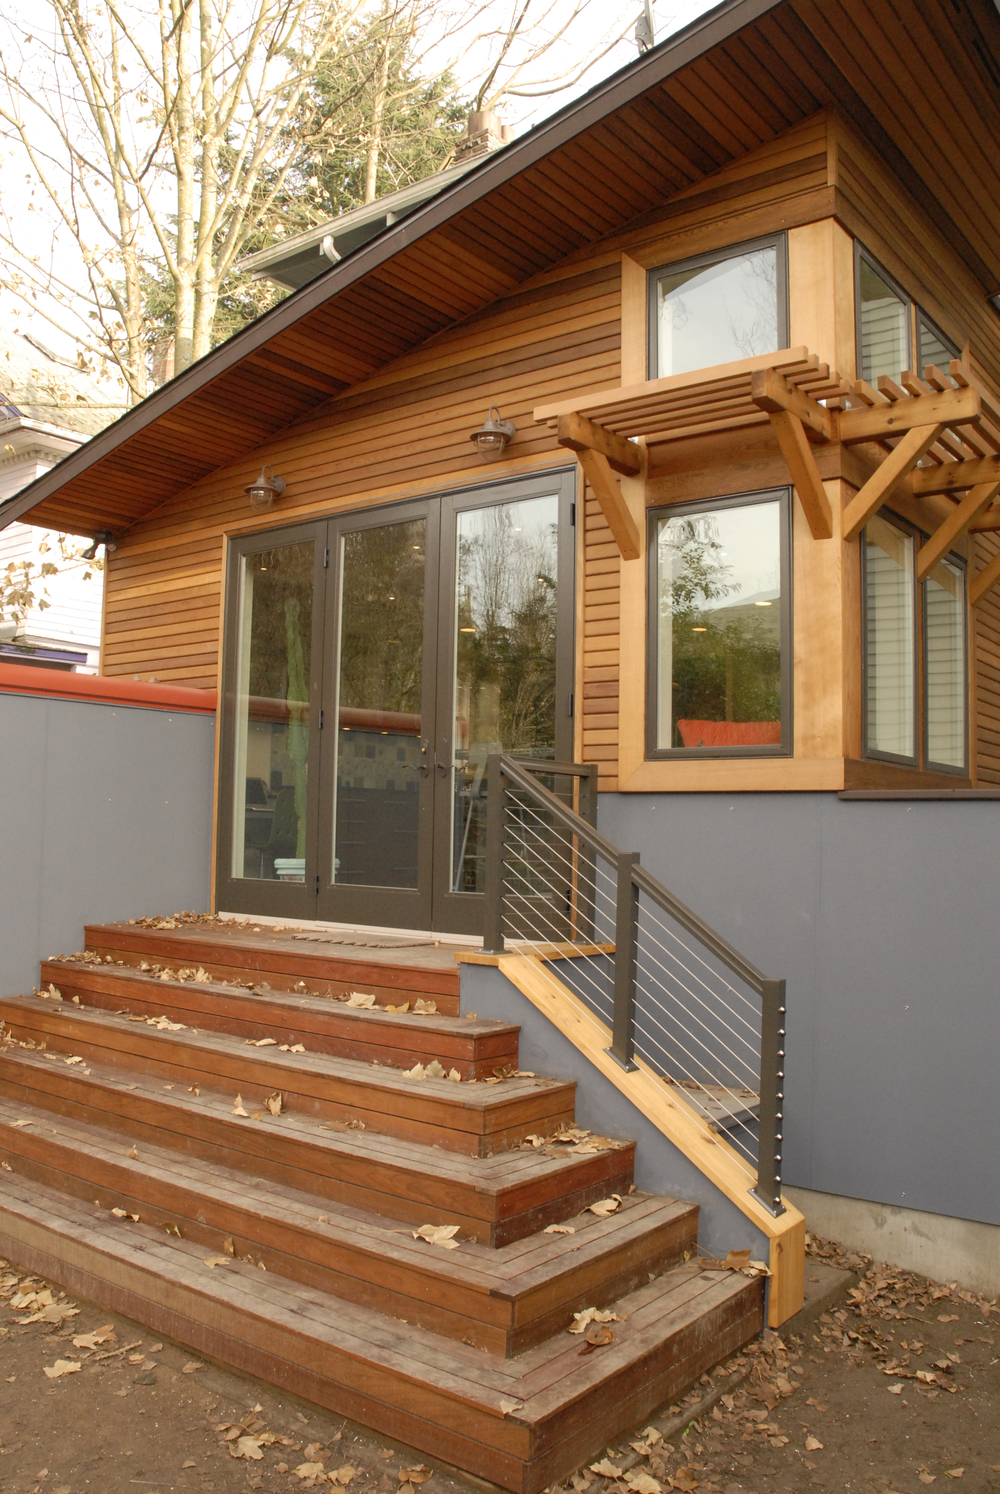 Exterior is dramatic in style using eco-friendly cedar and natural finish